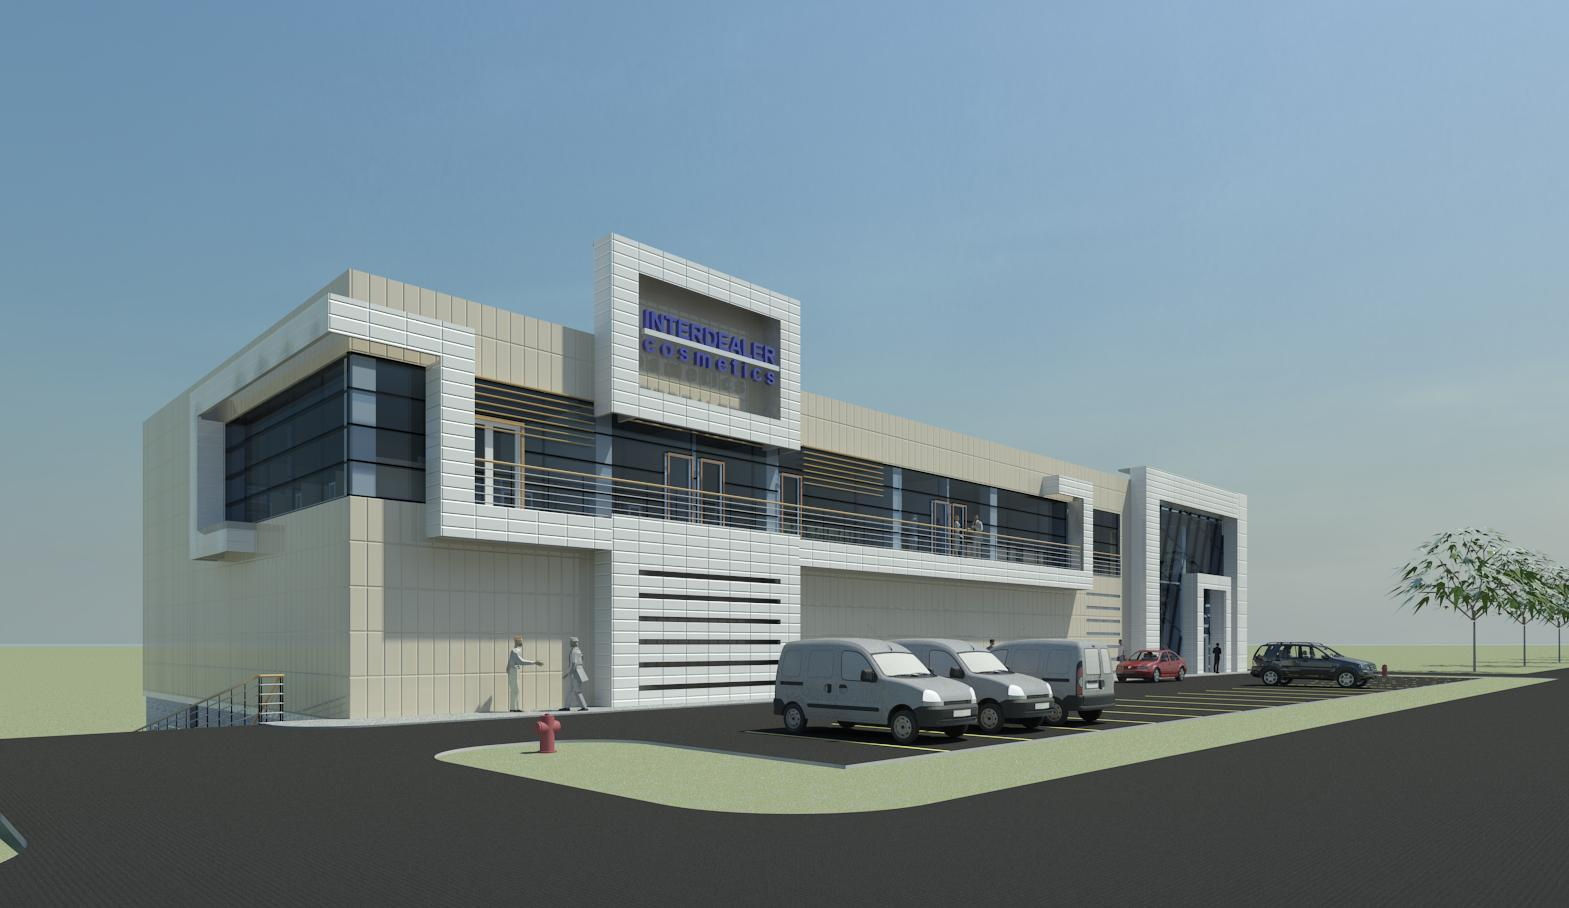 commercial building bg1 by dheeraj mohan at